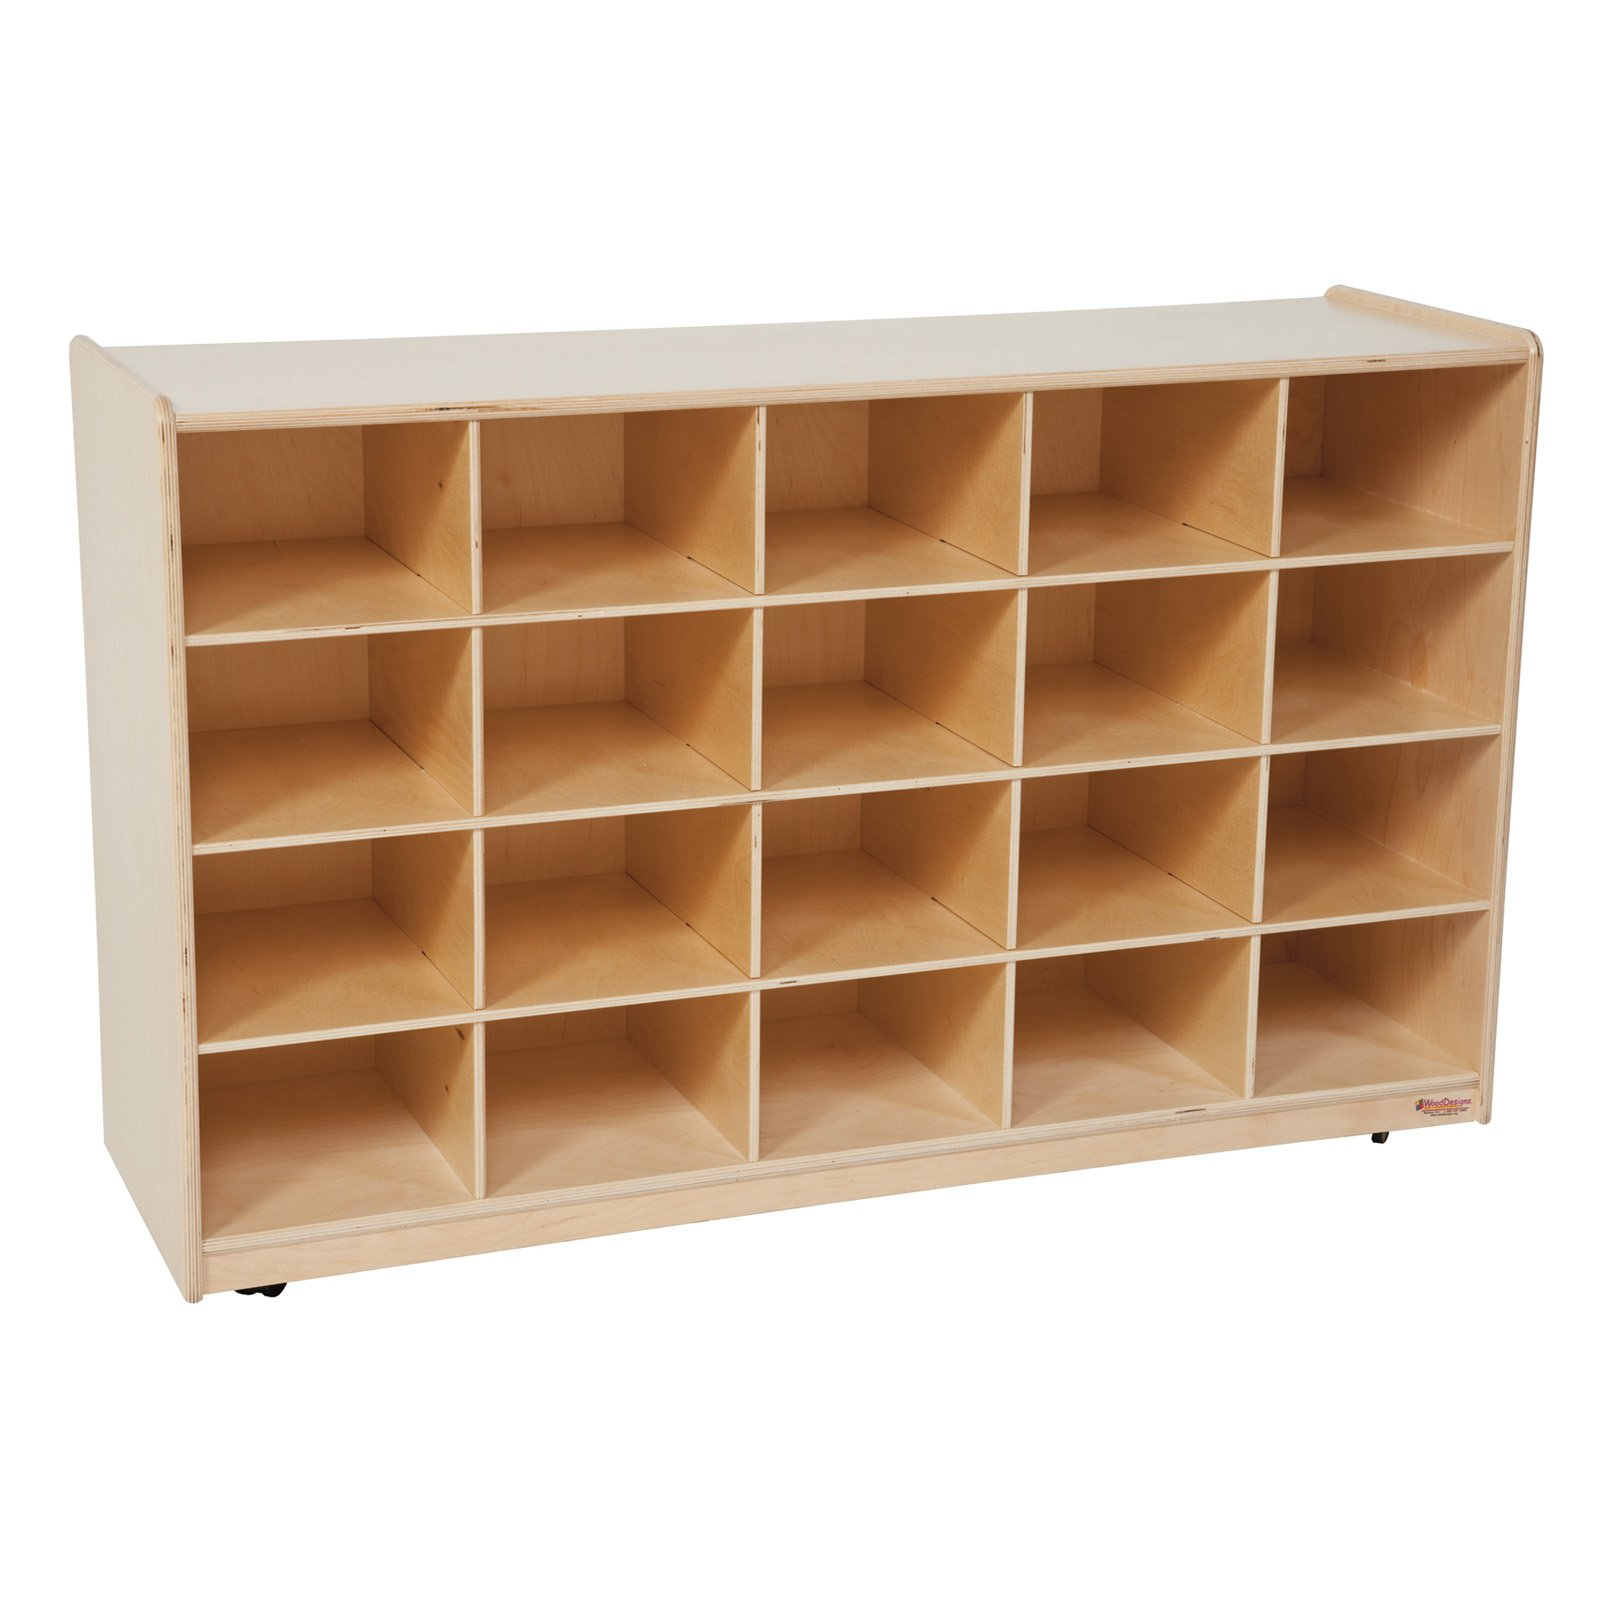 Wood Designs Natural 20 Tray Storage without Trays